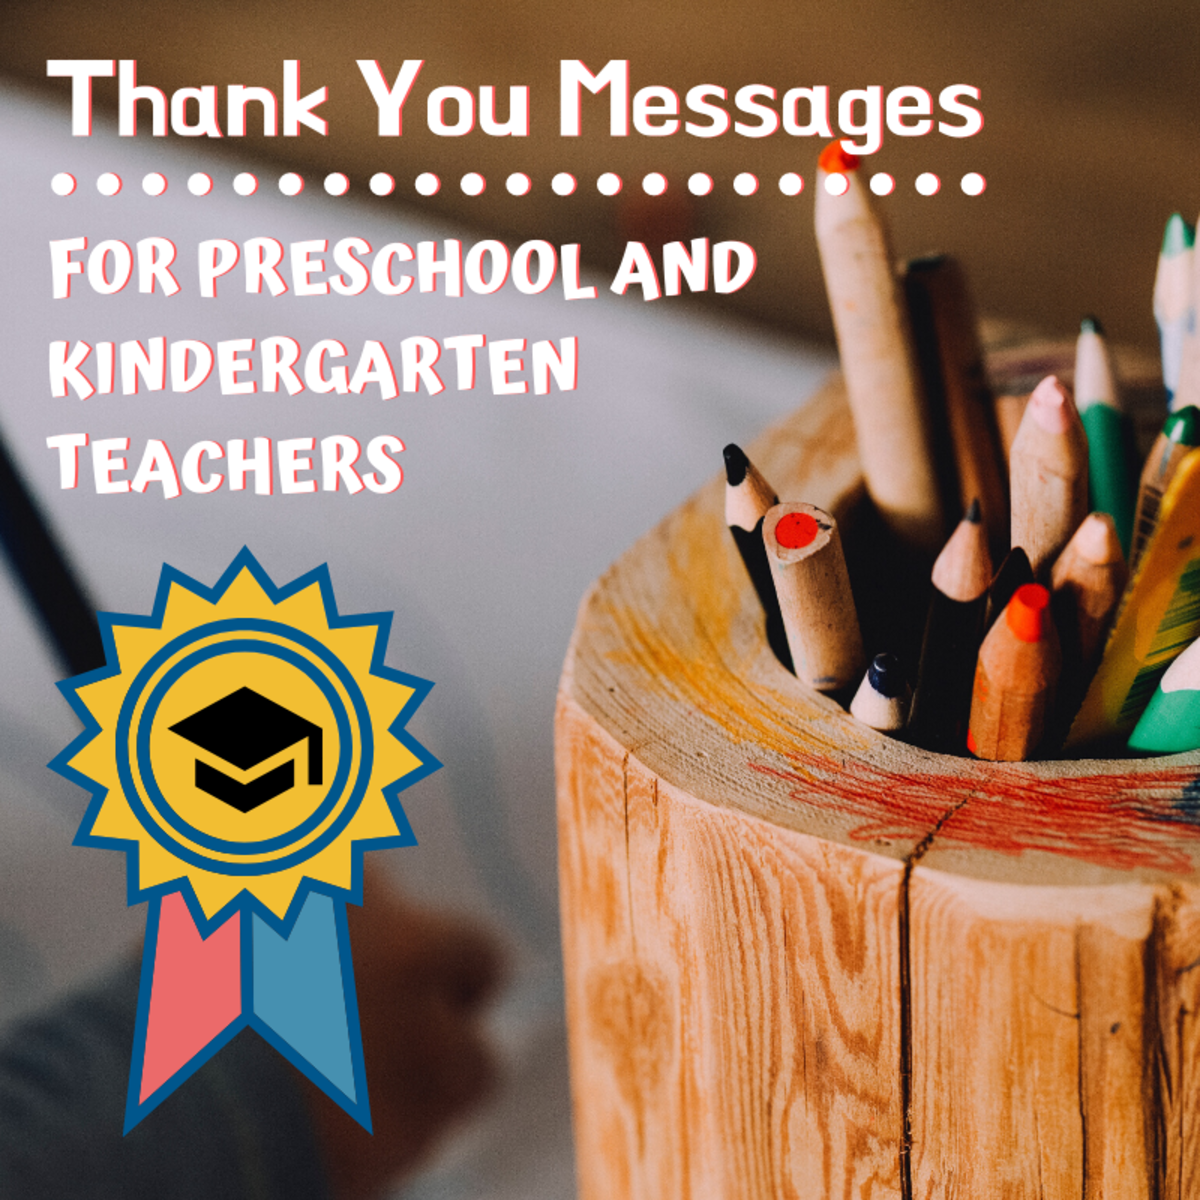 If you want to thank your child's teacher for all that they do but are having trouble finding the right words, look over these example messages for inspiration.